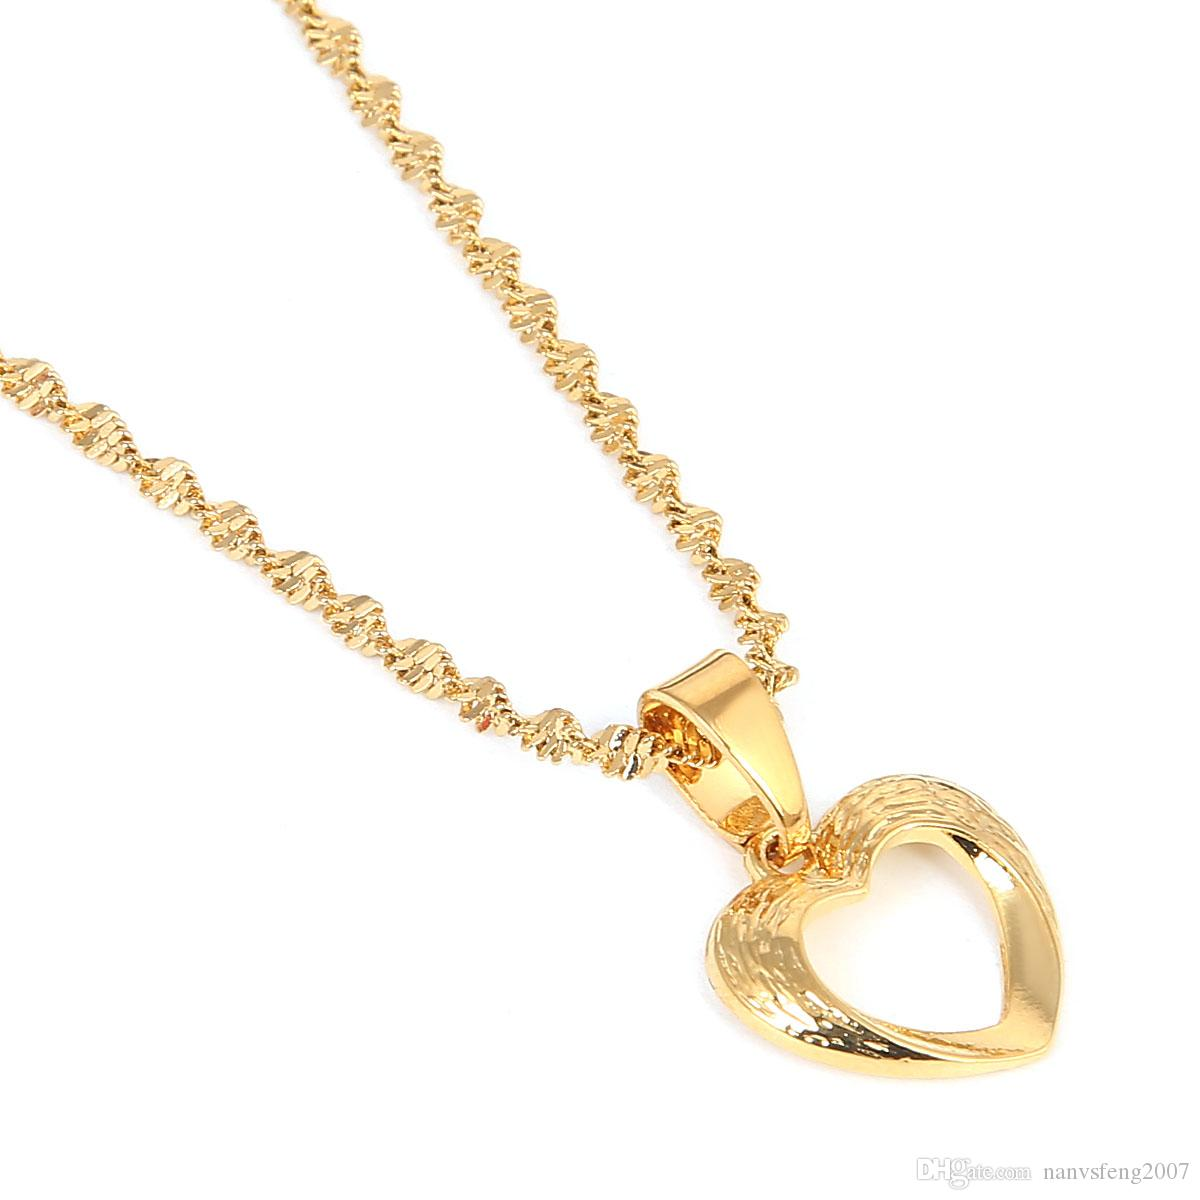 Heart Pendant Necklaces Romantic Jewelry for Women Girls Wedding Gift Girlfriend Wife Gifts